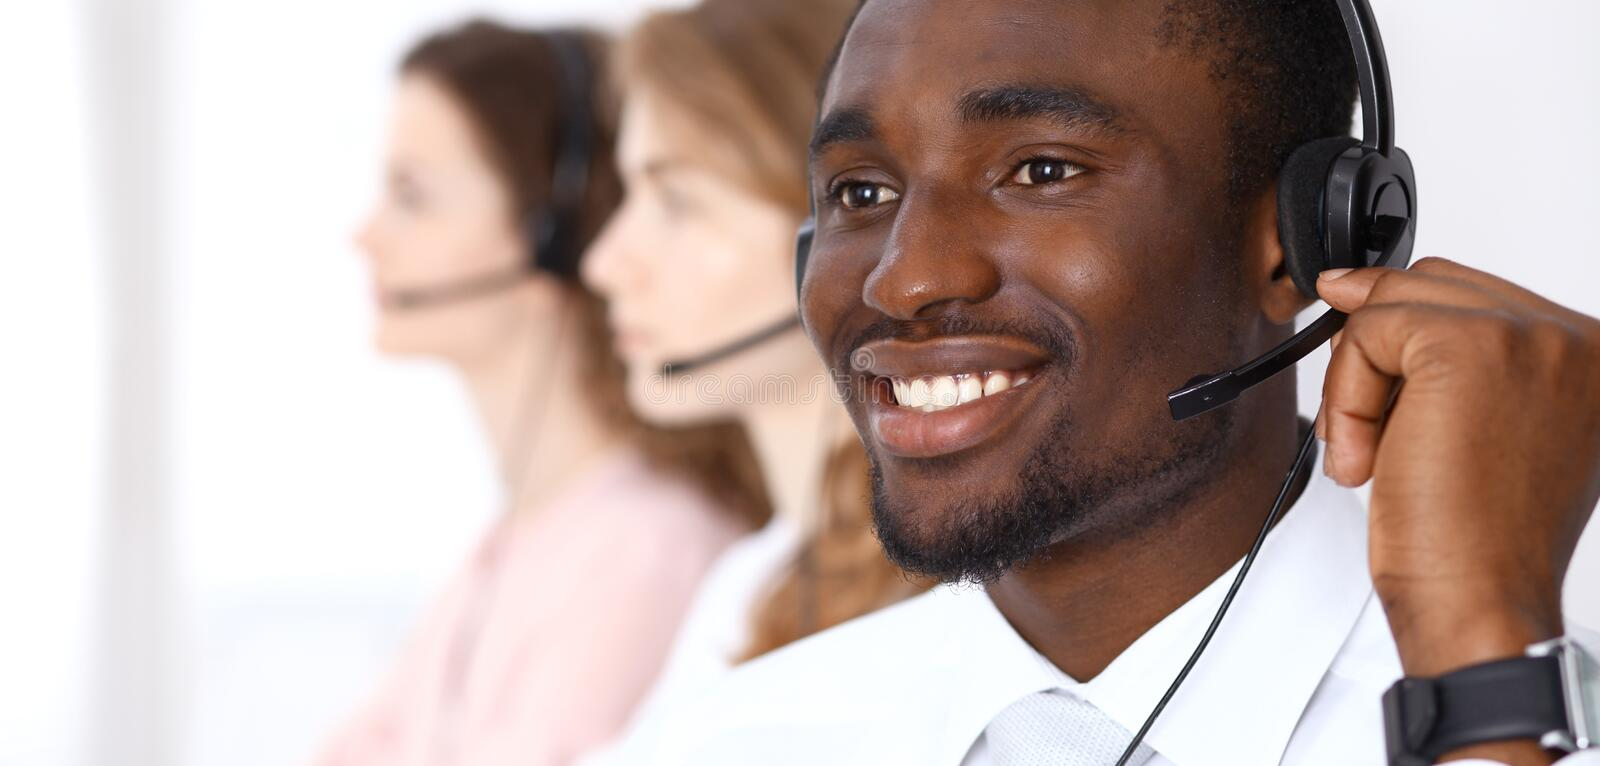 African american call operator in headset. Call center business or customer service concept stock photo